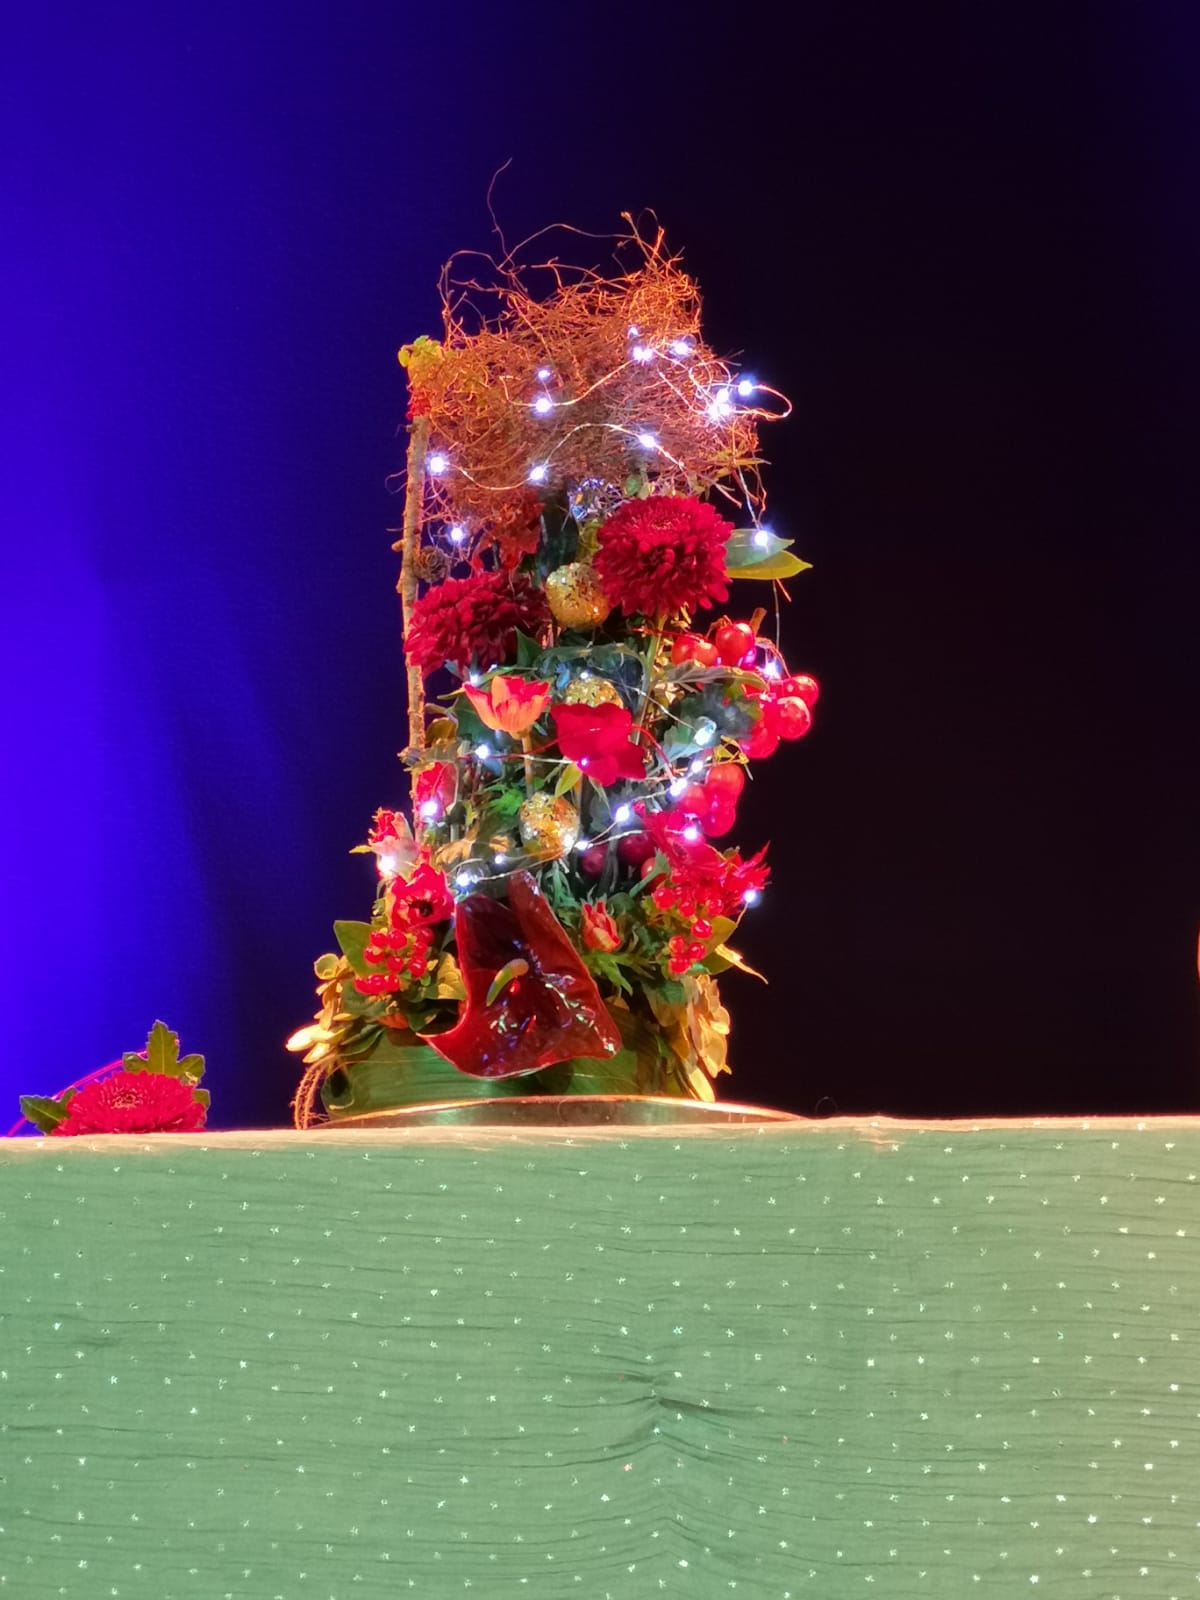 The Nutcracker arrangement made by Fleur from Booker Flowers and Gifts